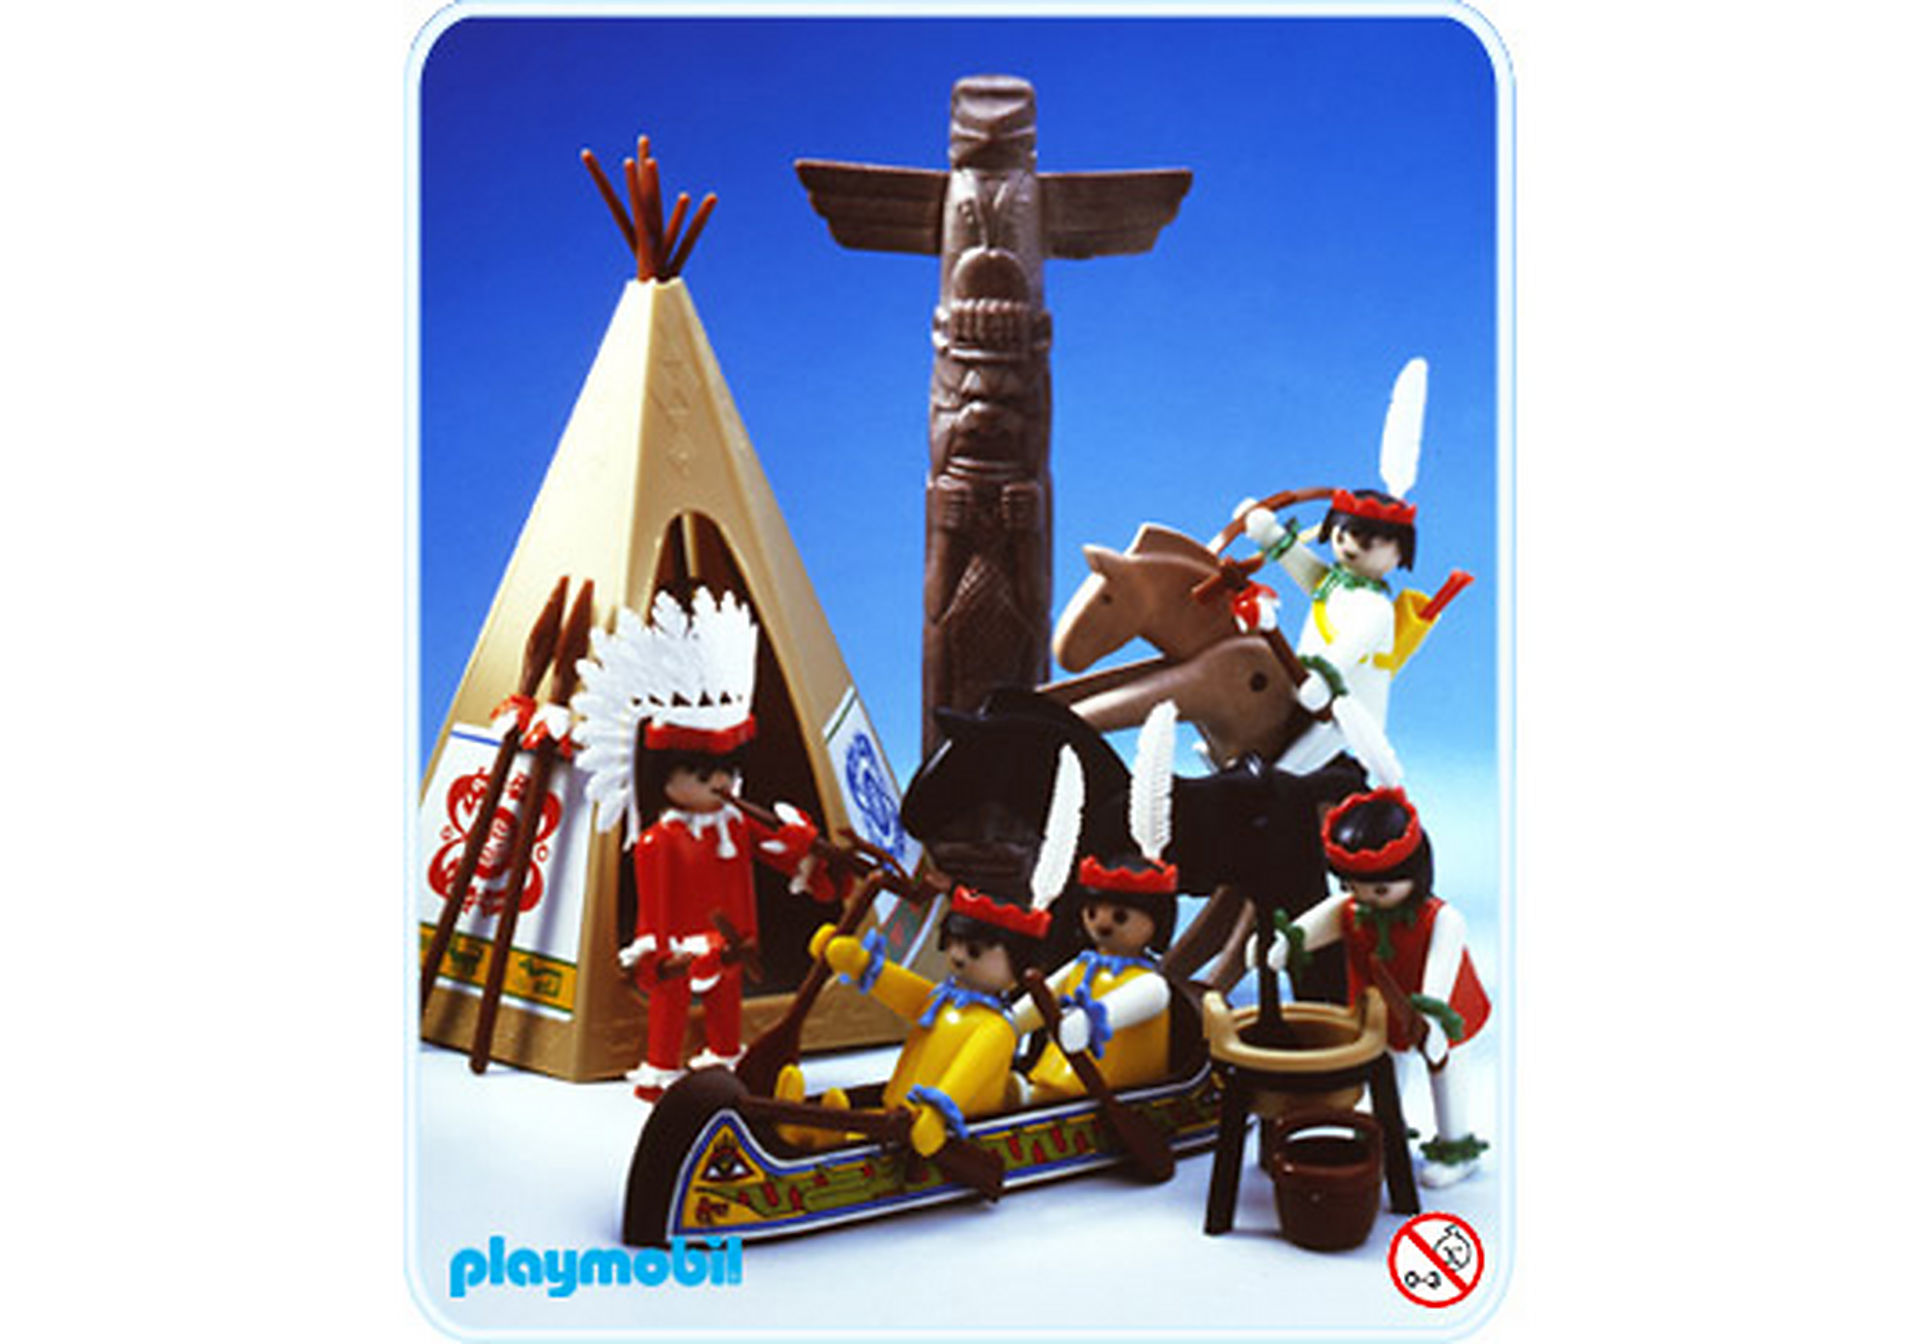 http://media.playmobil.com/i/playmobil/3483-A_product_detail/Indianer